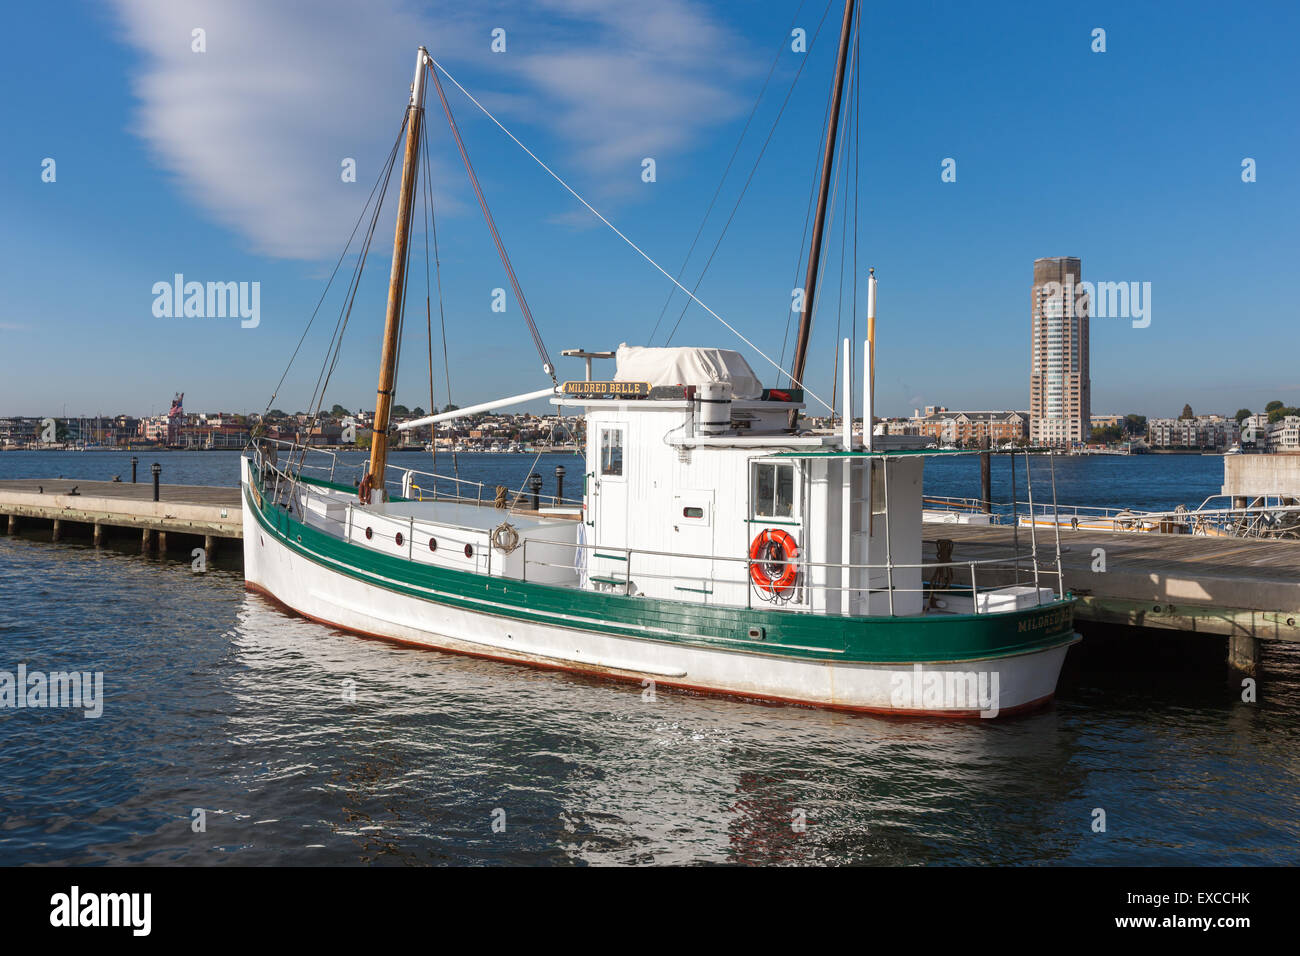 The Midred Belle, a traditional Chesapeake Bay Buy Boat, now a research vessel for the Living Classrooms Foundation - Stock Image